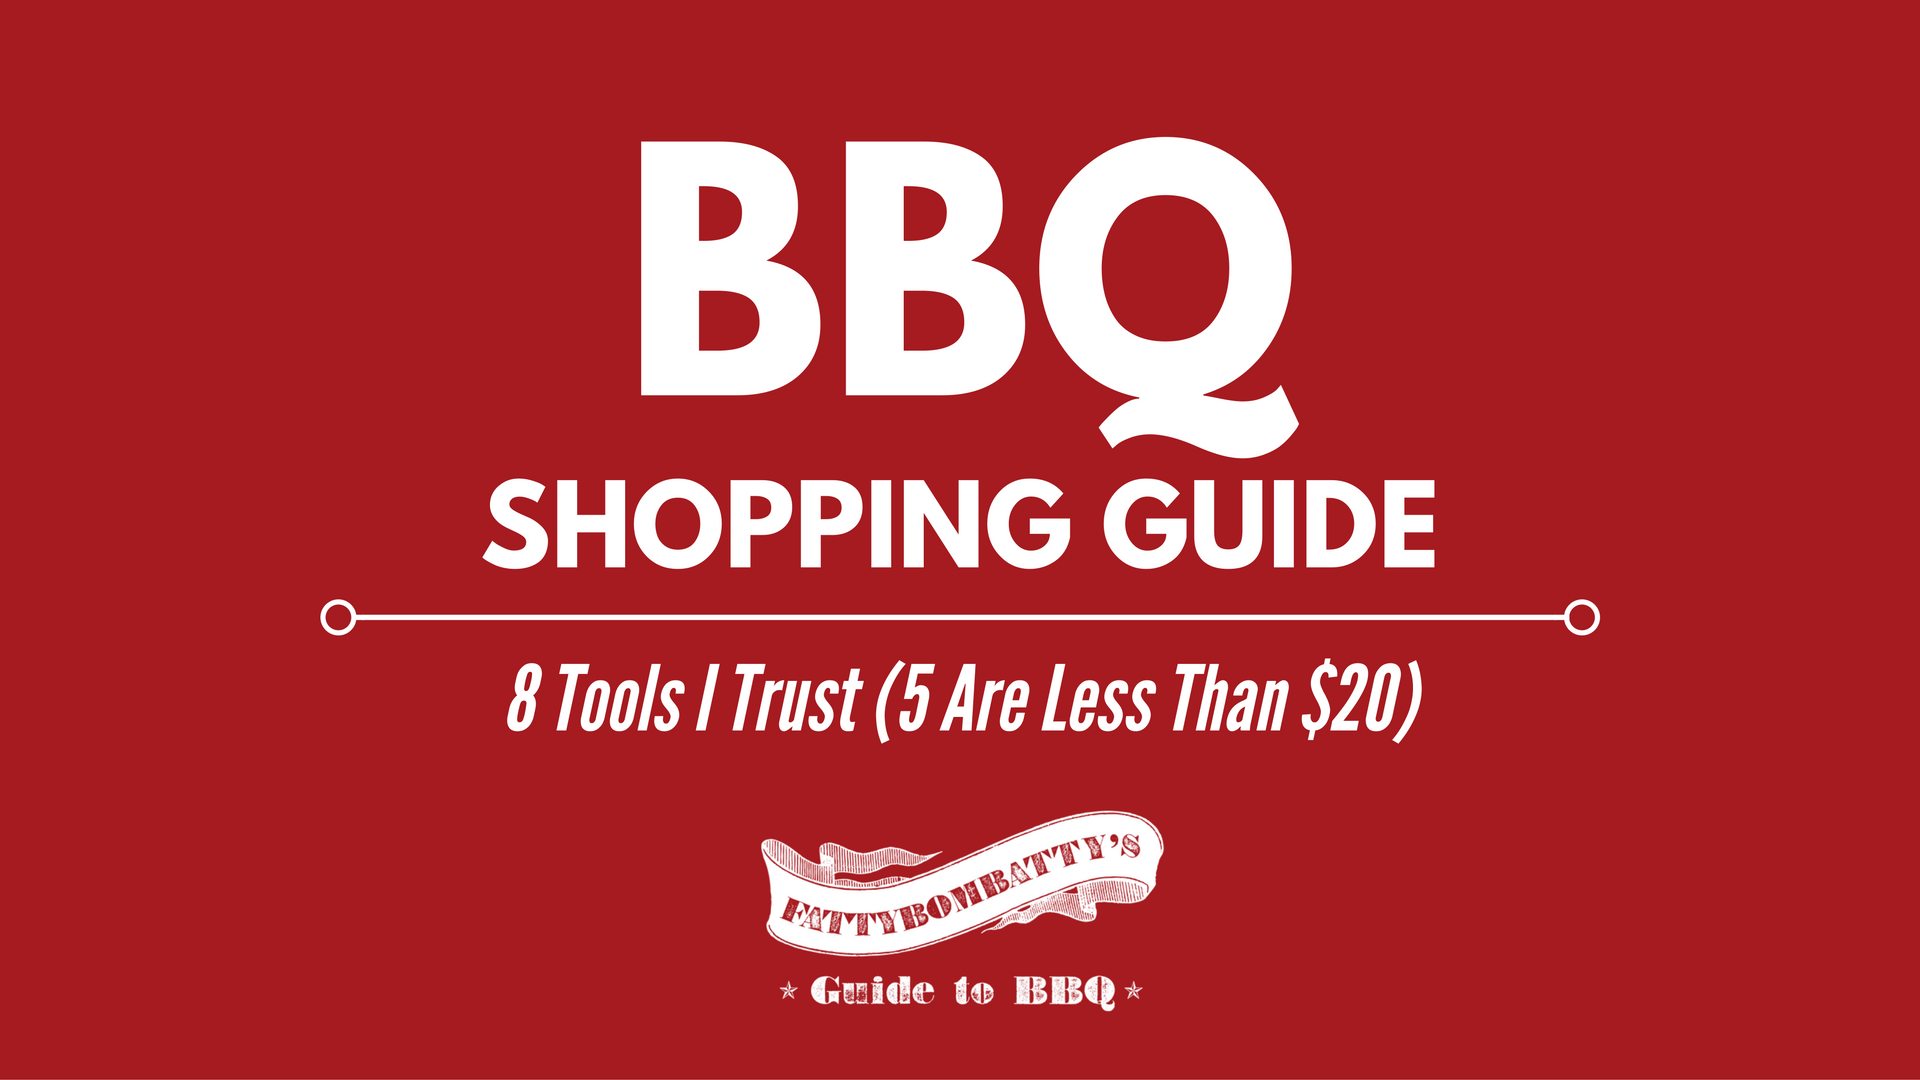 bbq-shopping-guide